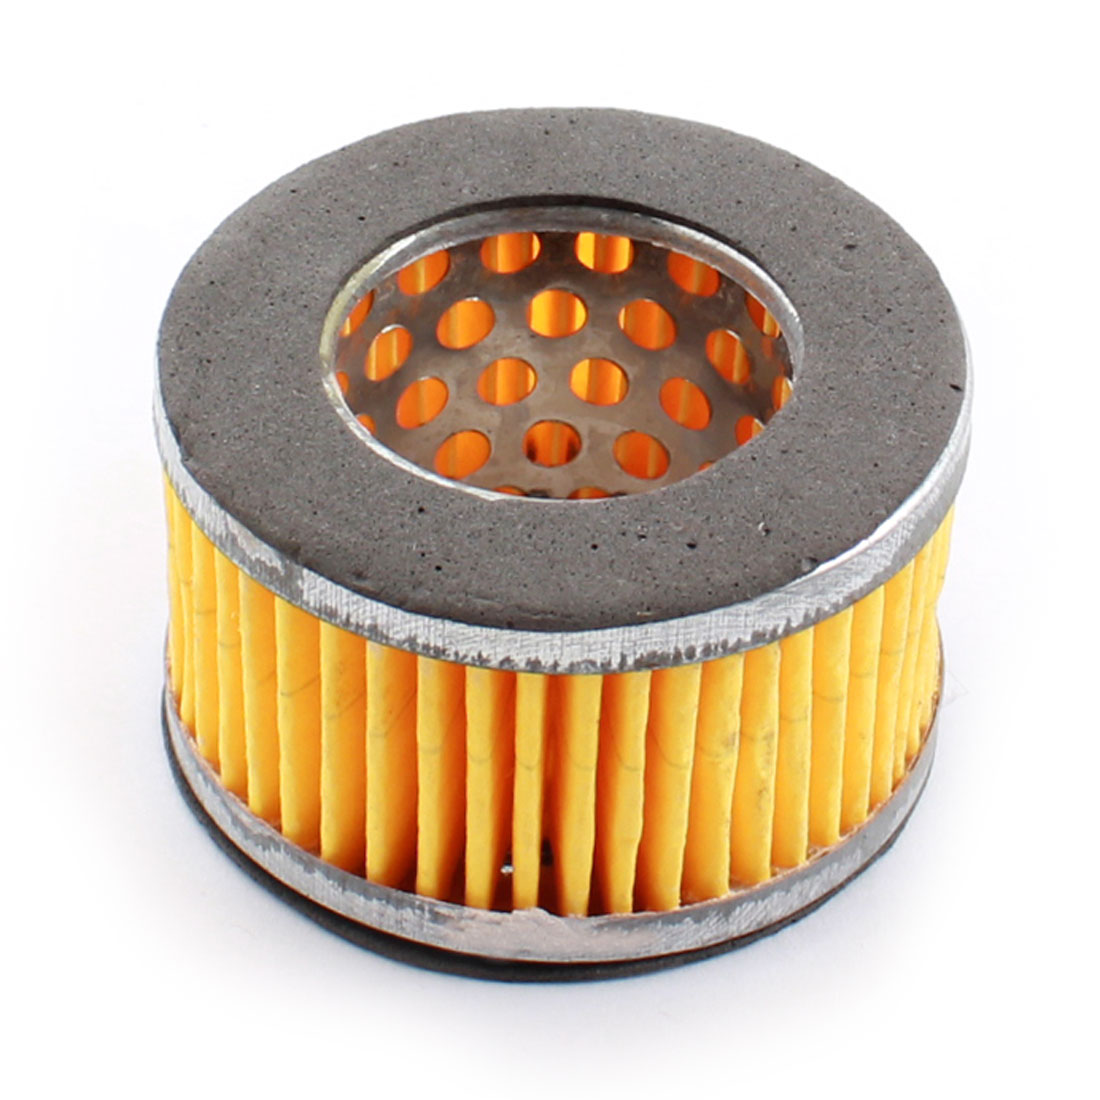 AW-0.36 Air Compressor Replacement Filter Element Yellow 65mmx35mmx40mm